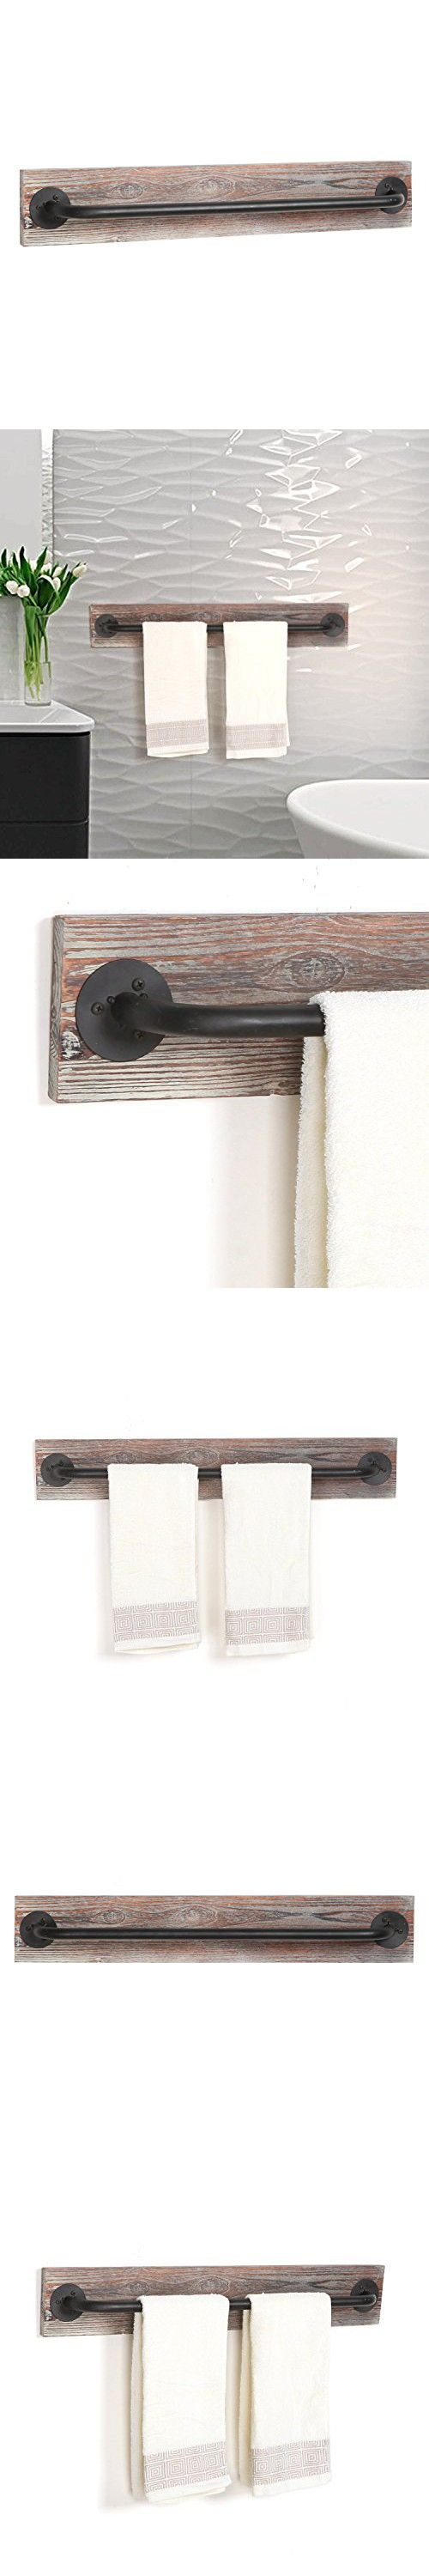 torched wood u0026 black metal hanging towel bar wall mounted bathroom towel holder rack